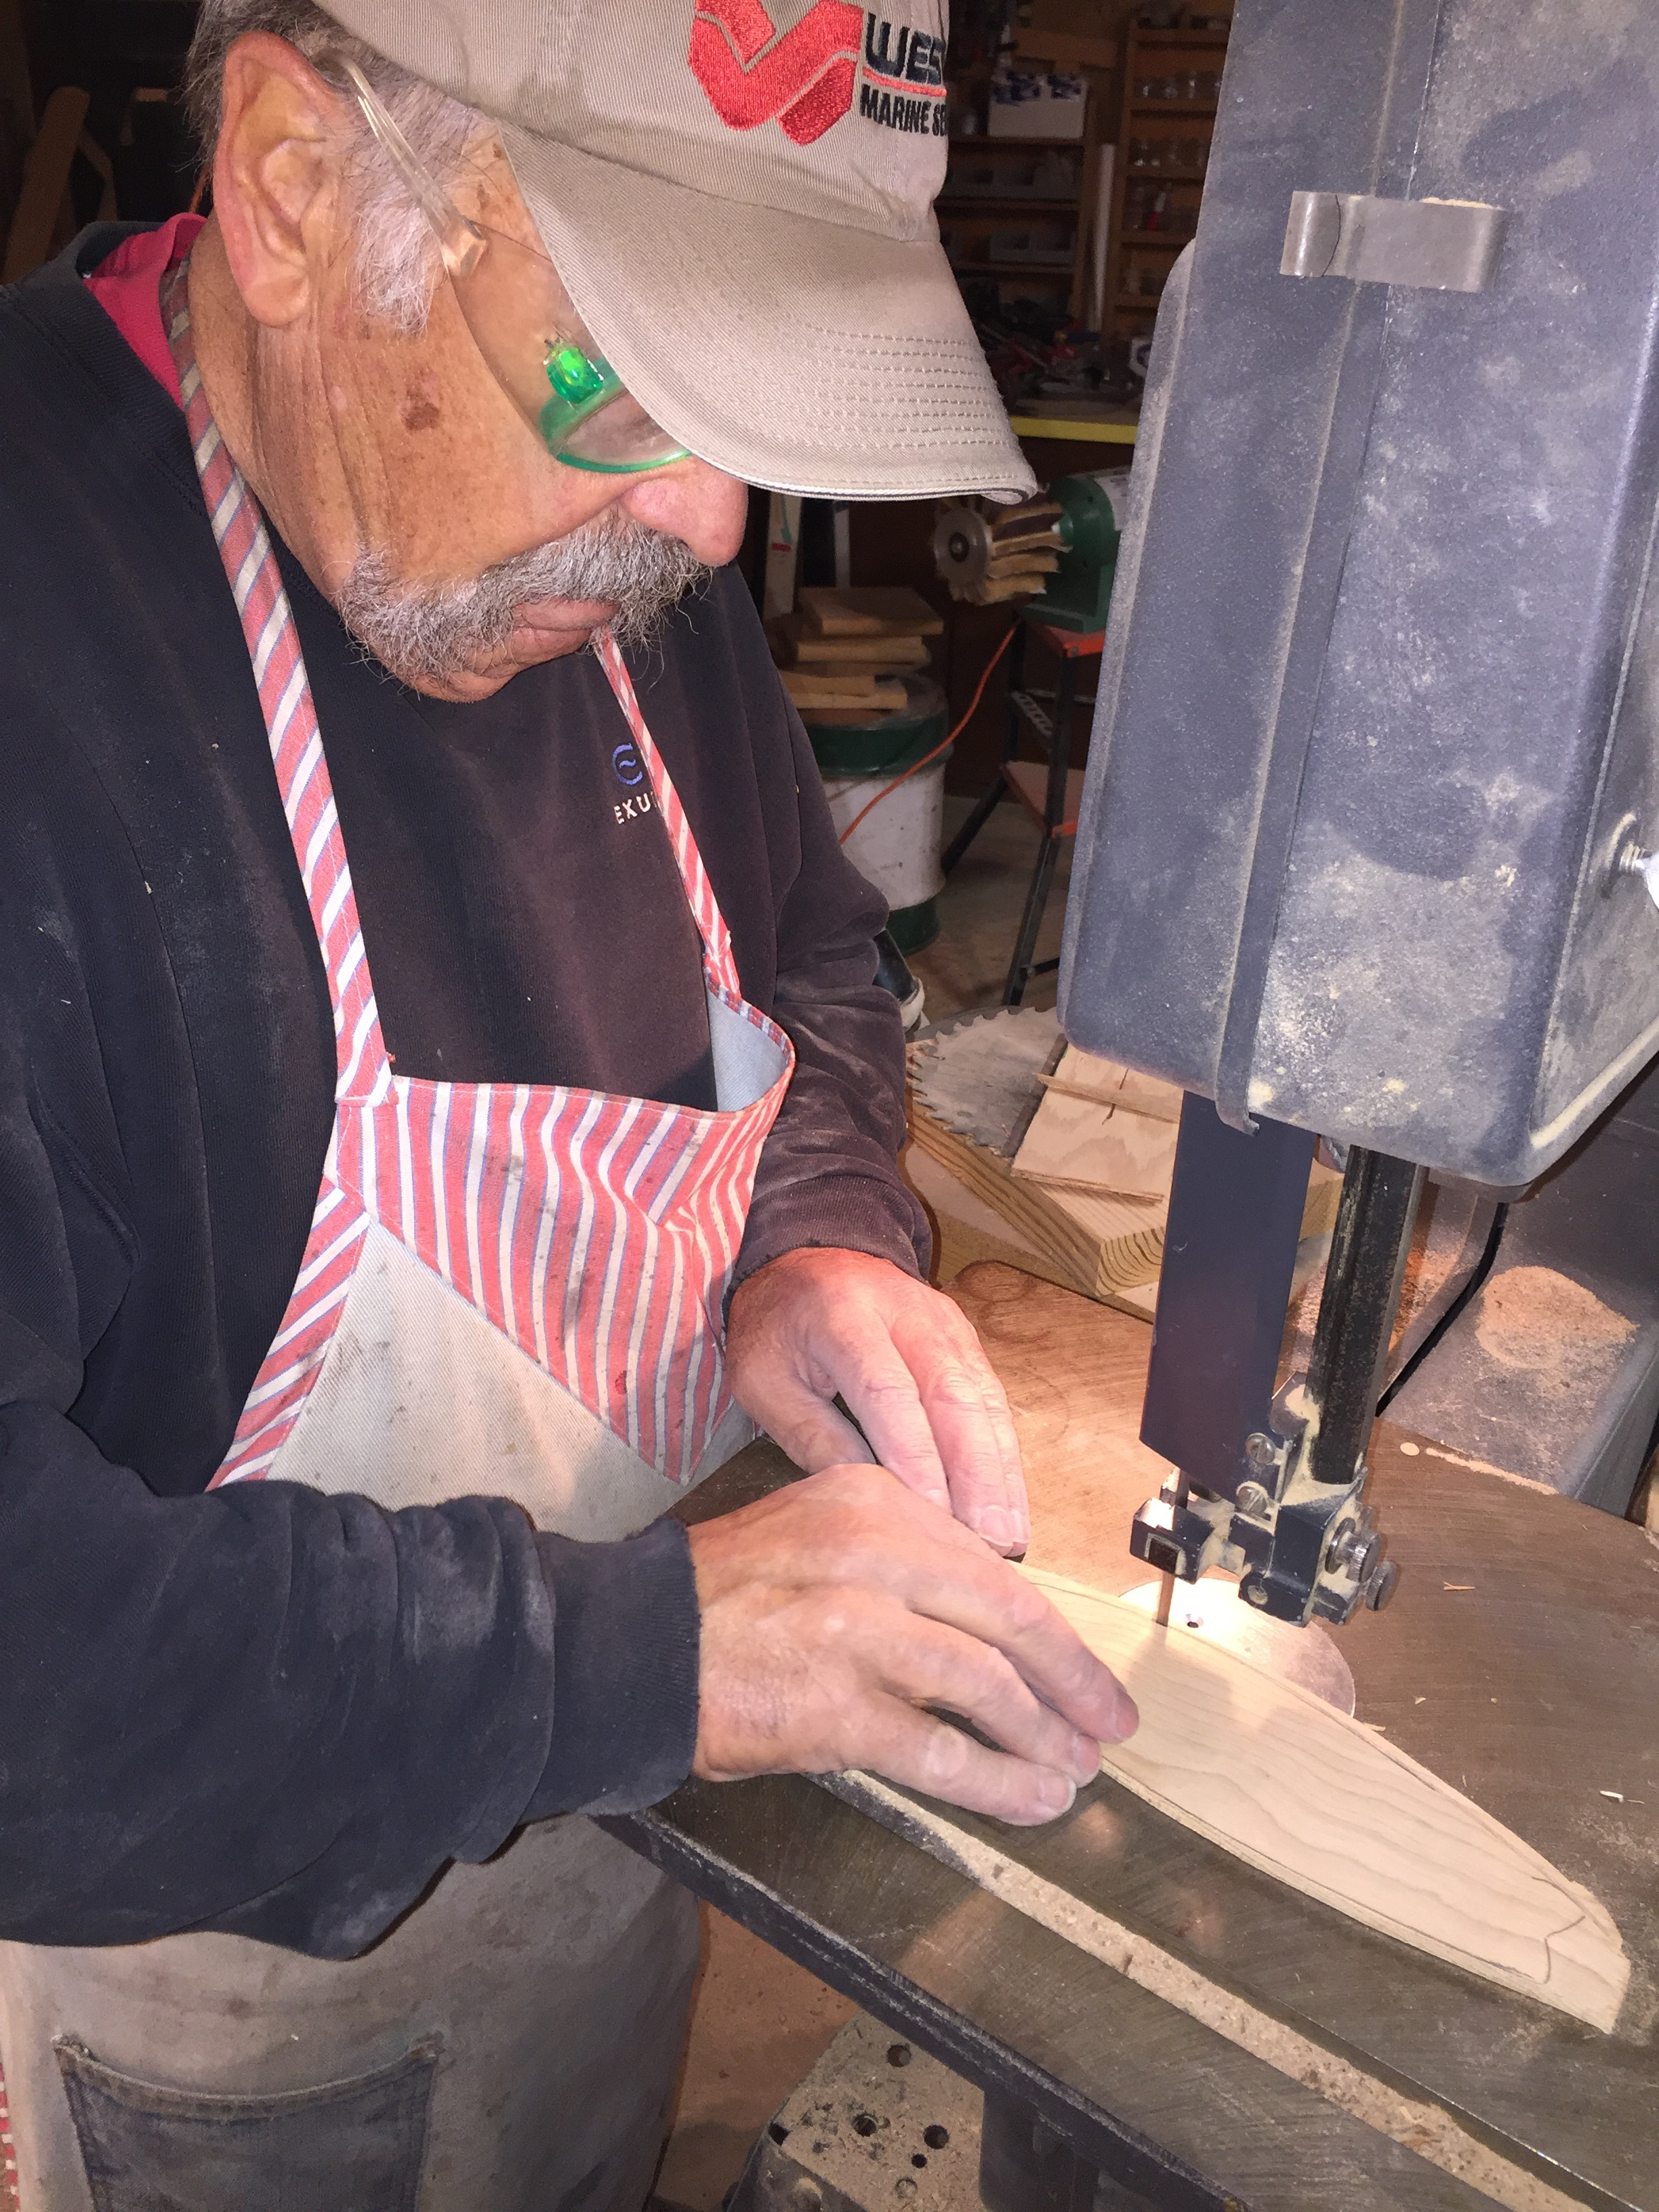 Dennis Working with Precision Saw